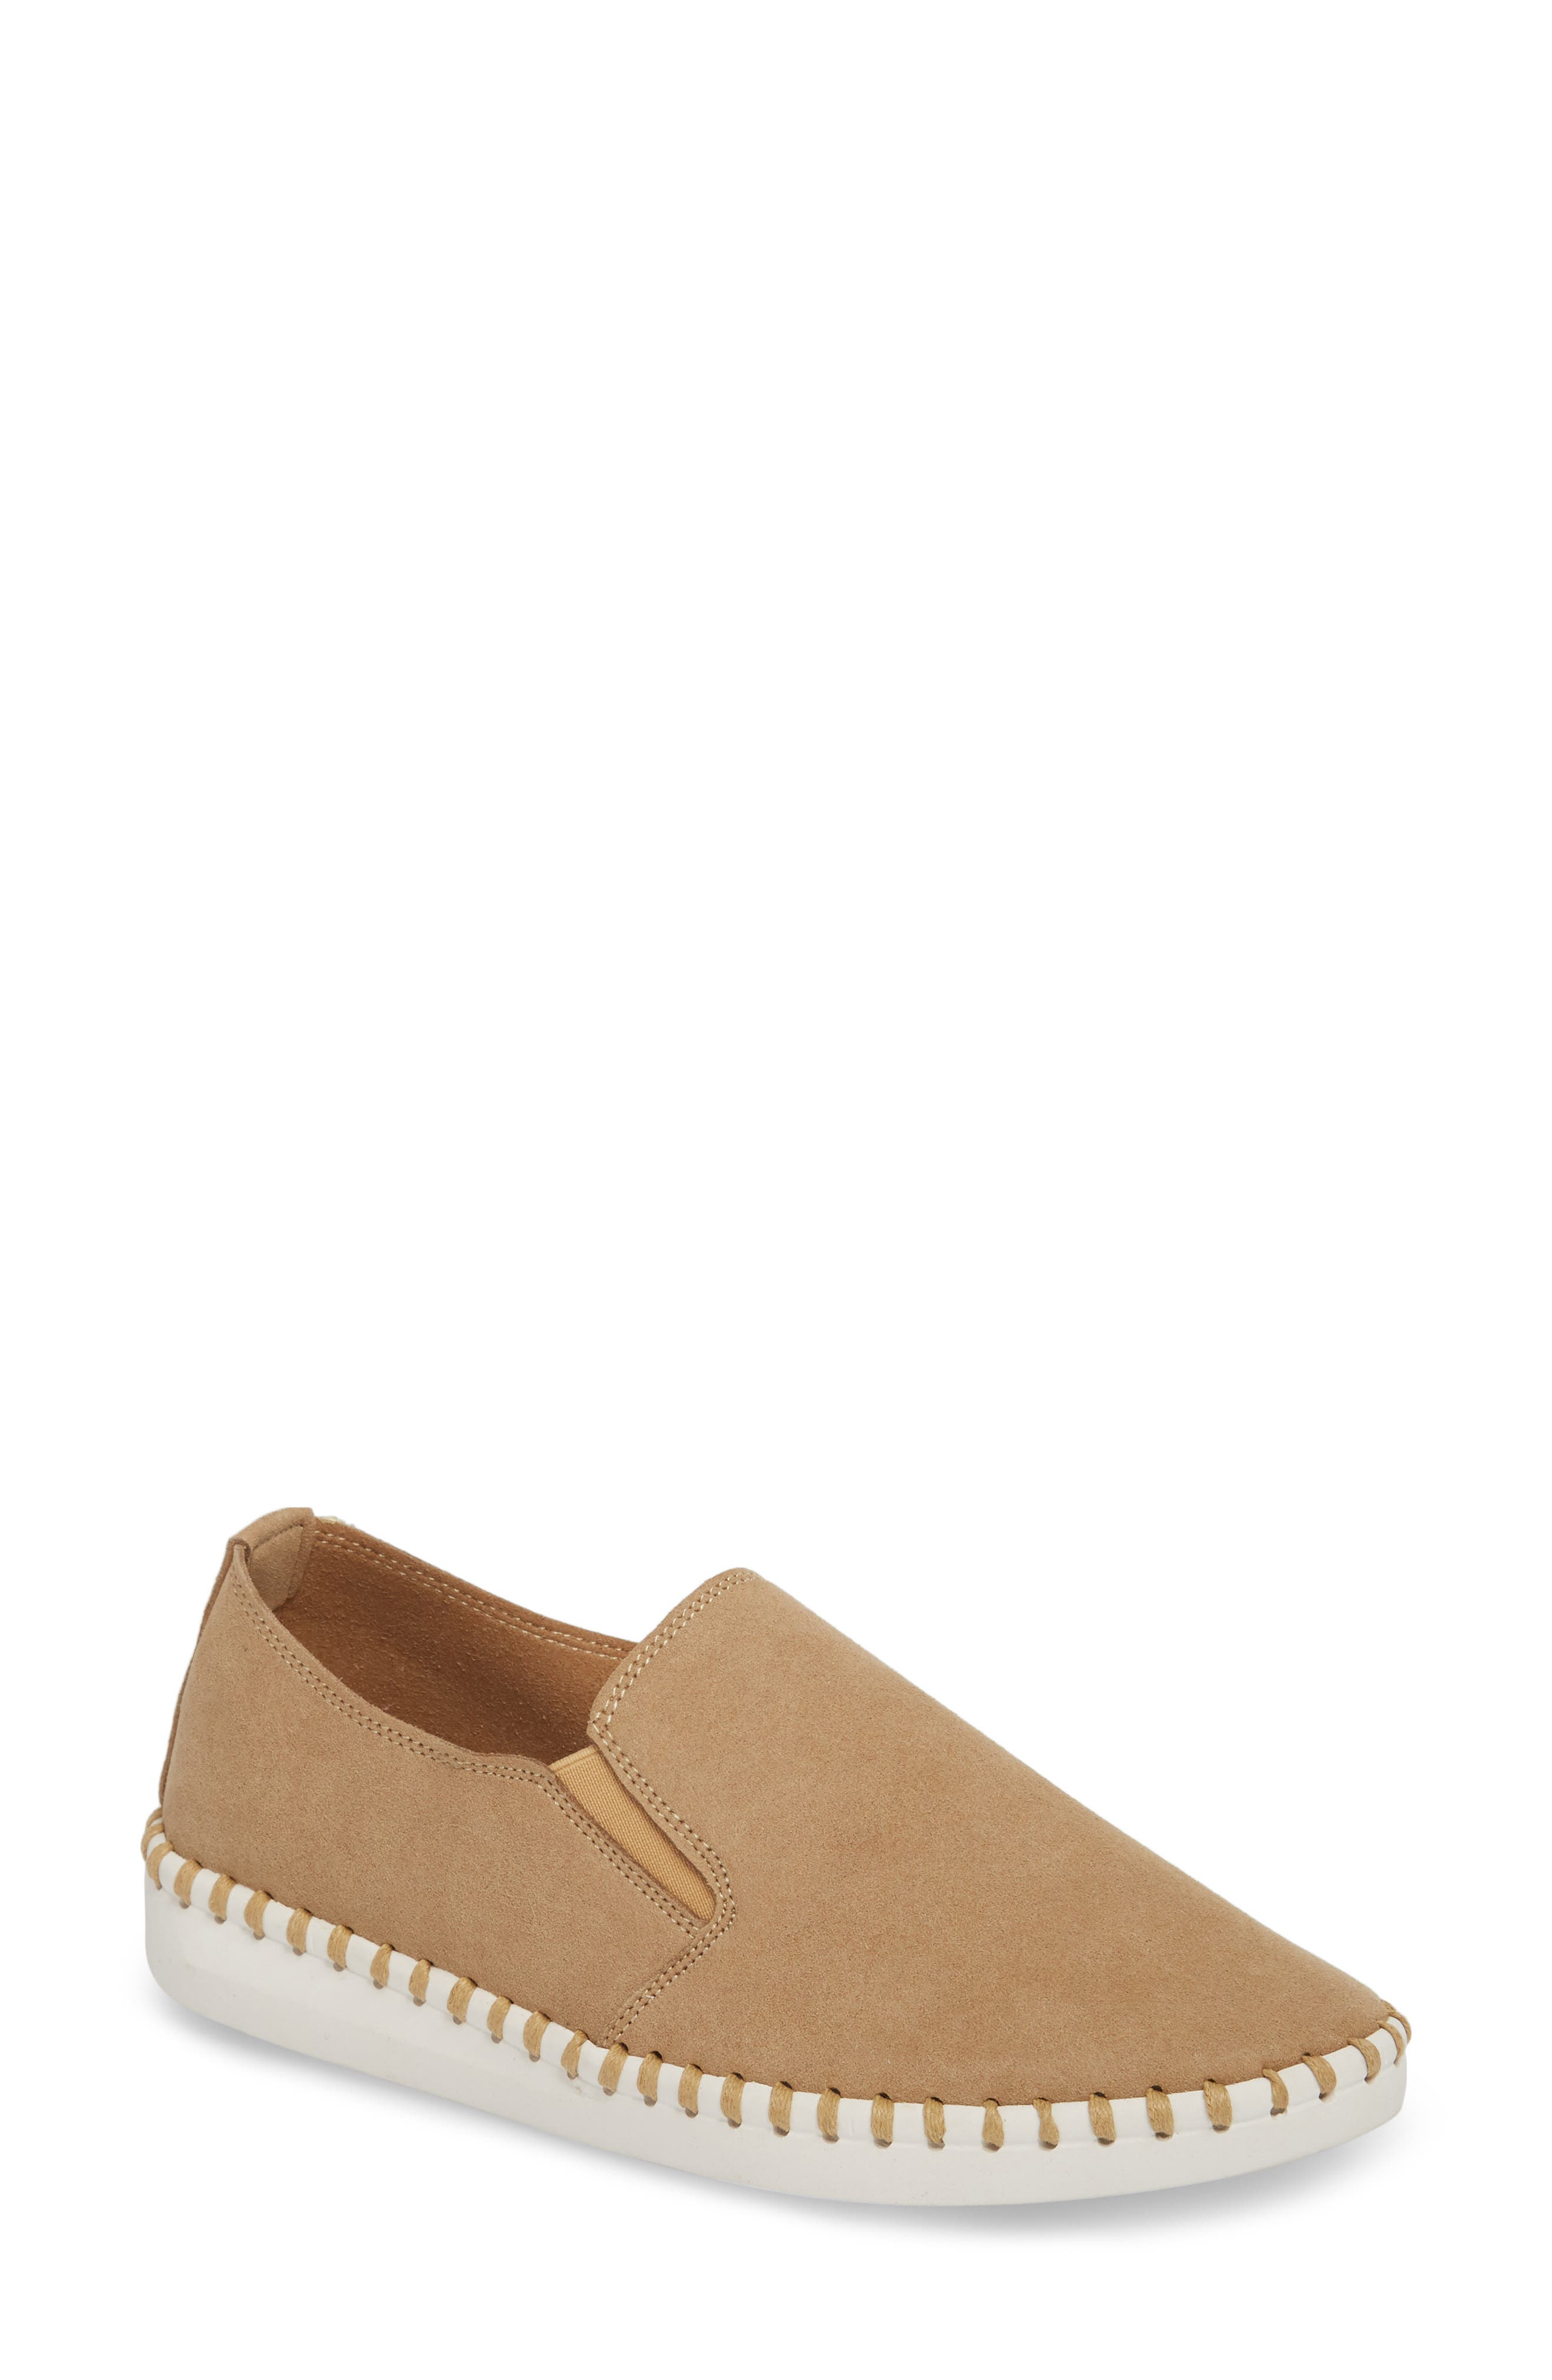 Salinas Waterproof Slip-On Sneaker,                         Main,                         color, TAN FABRIC